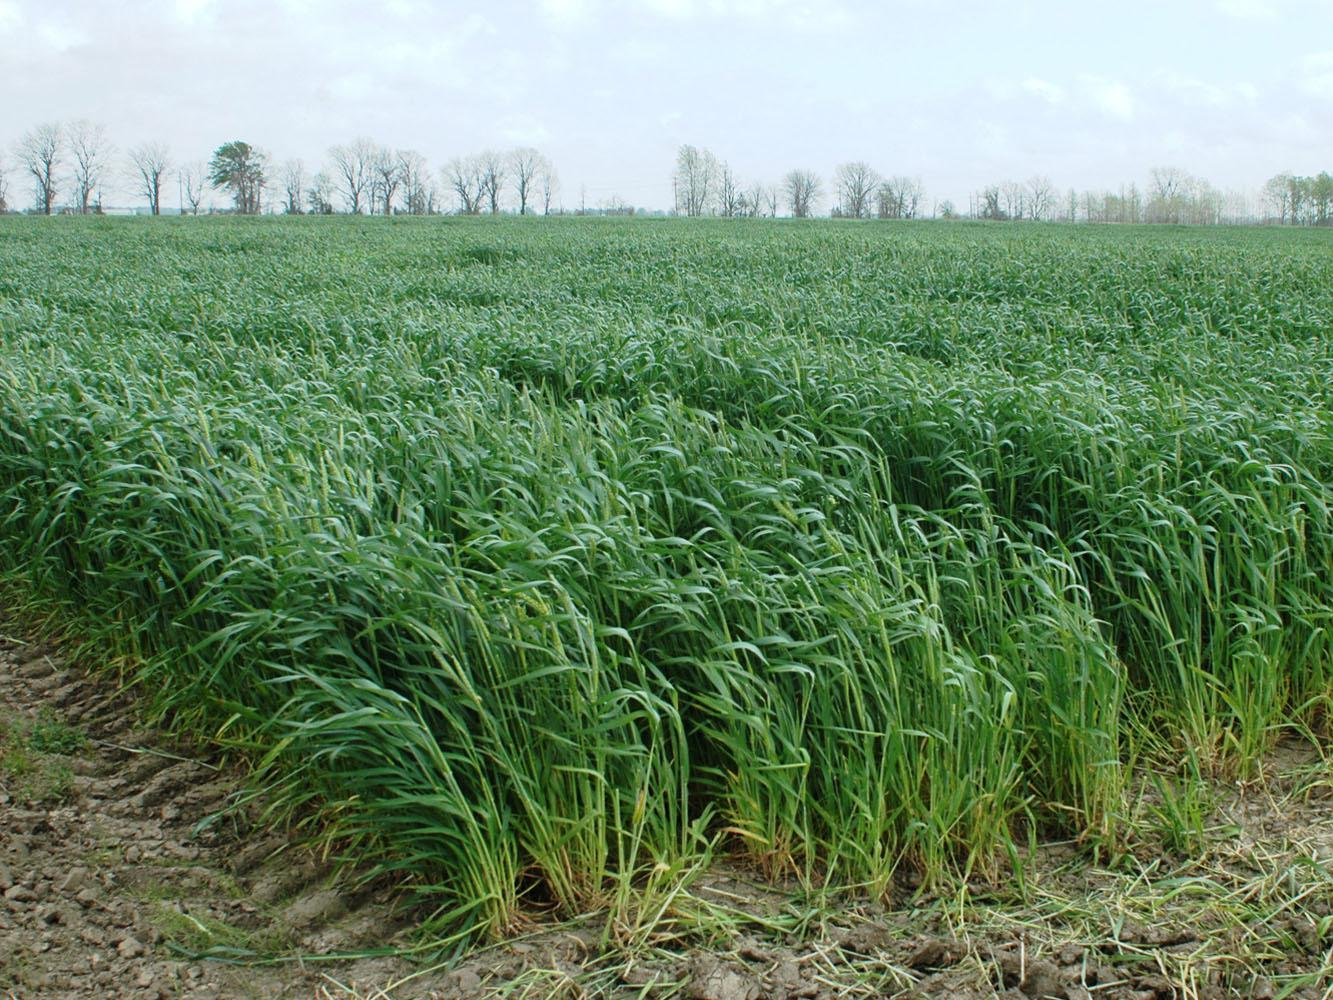 Wheat, such as this growing in Washington County, was pushed ahead of schedule by a warm winter that presented many challenges for the crop to overcome. (Photo by MSU Delta Research and Extension Center/Rebekah Ray)